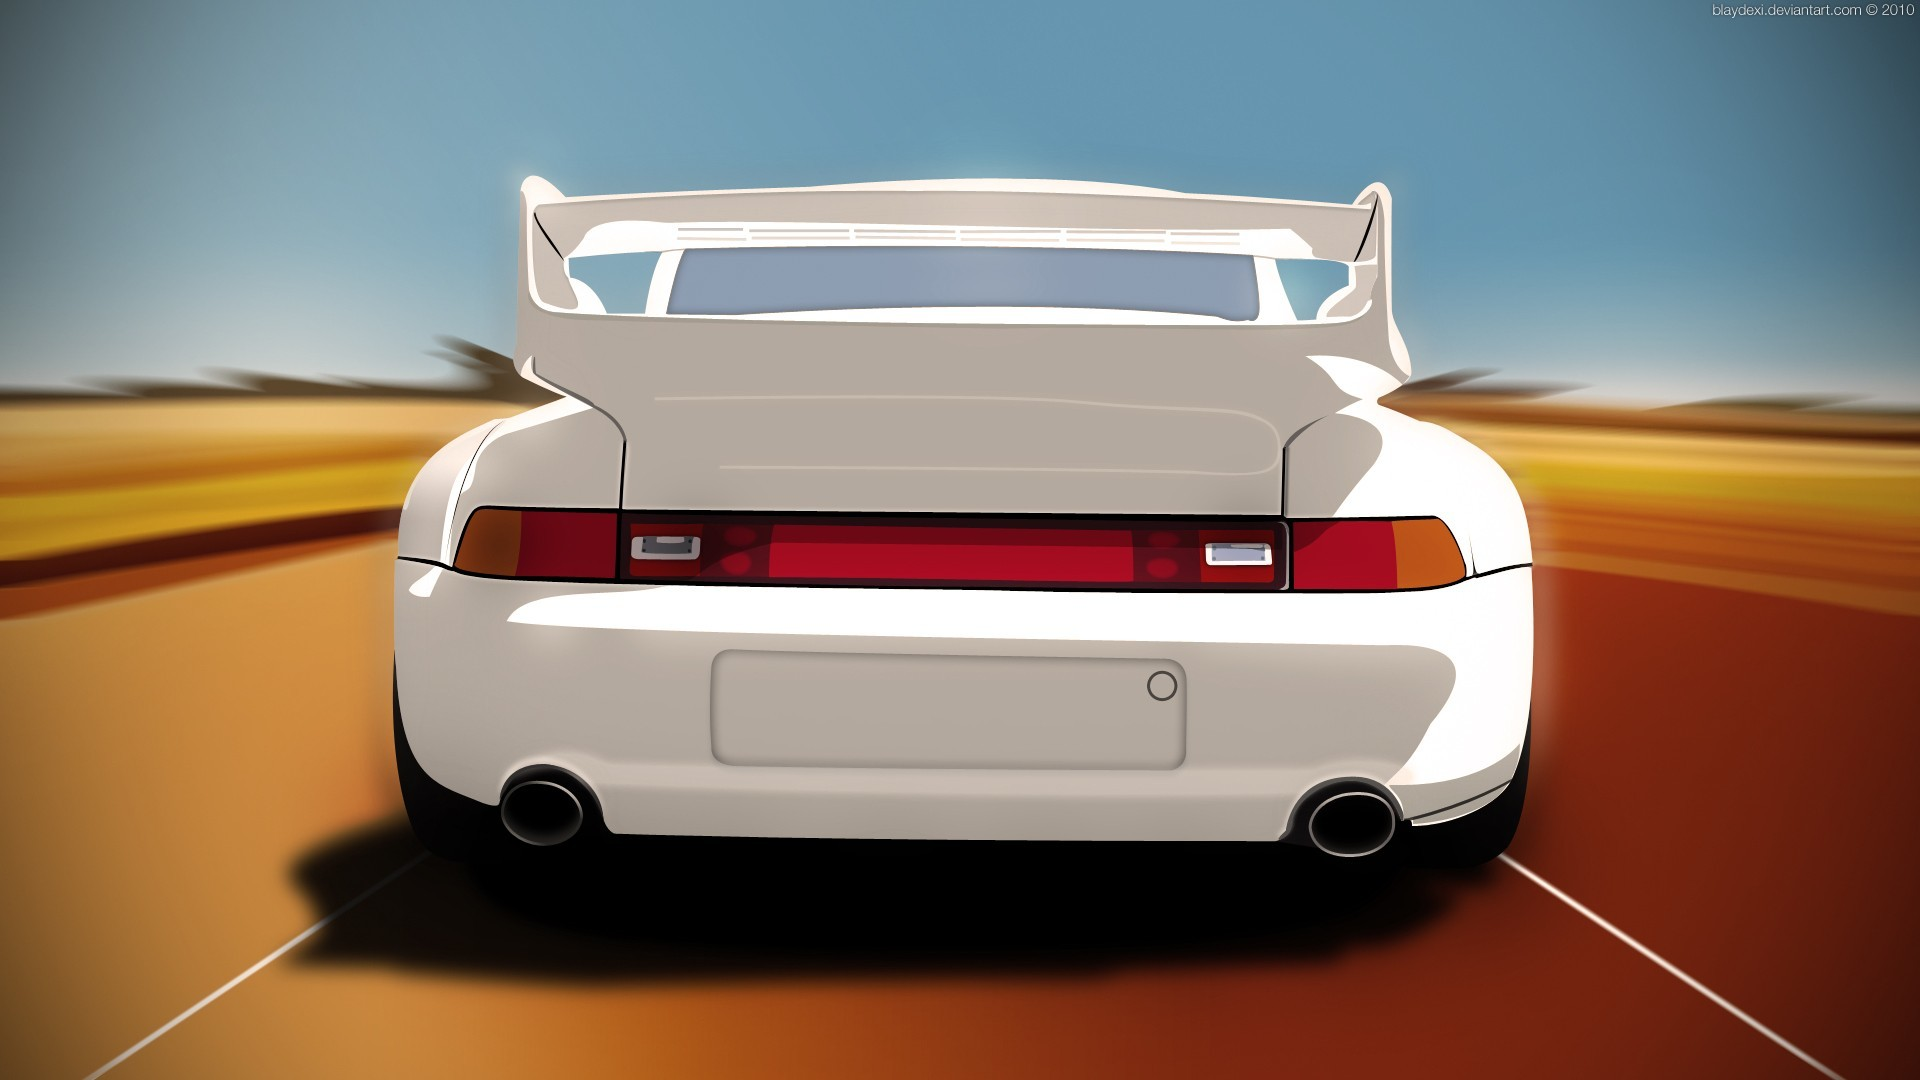 Porsche cars digital art HD Wallpaper